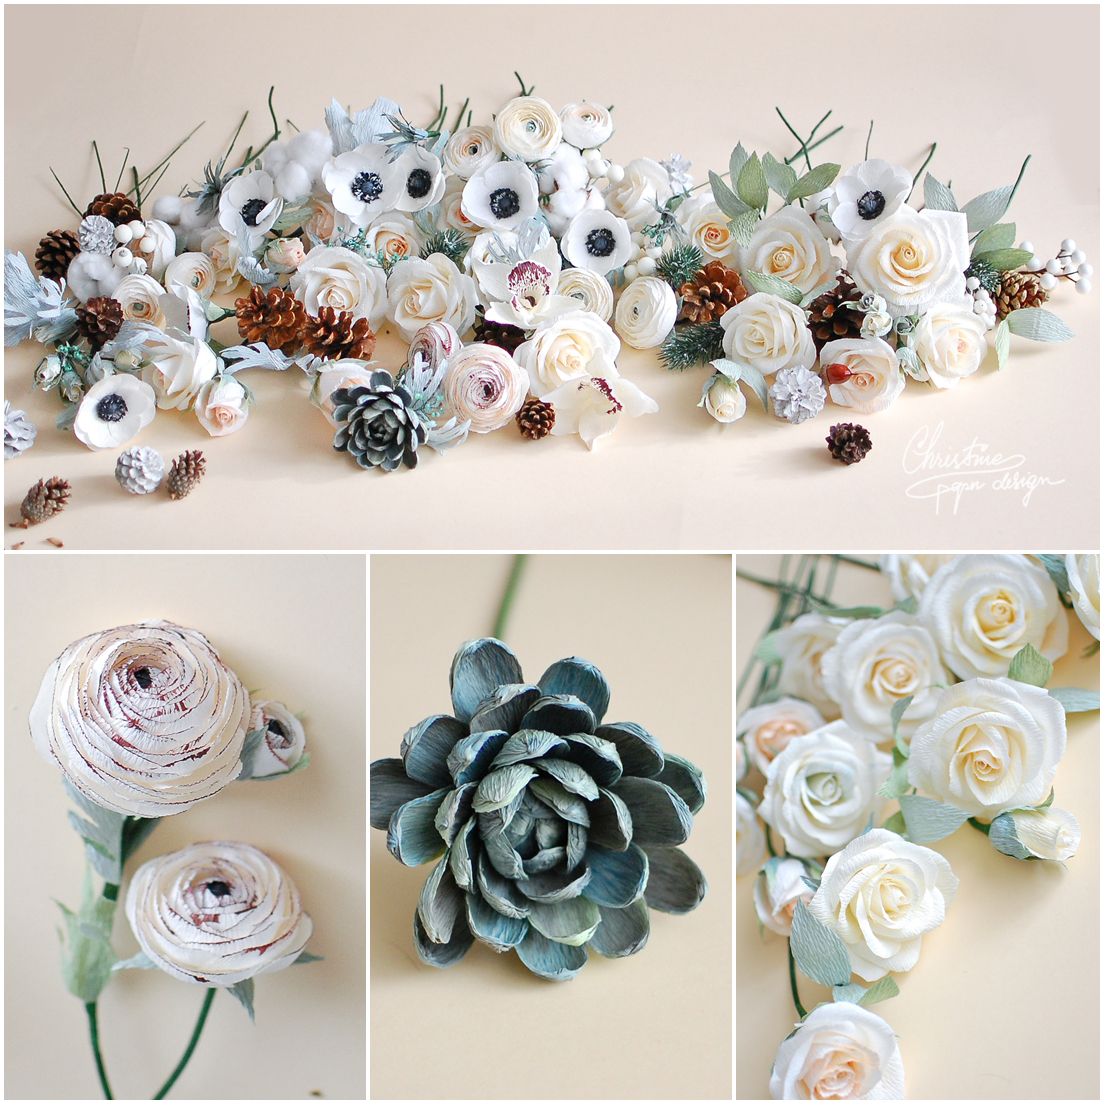 1Christine paper design - winter paper flowers